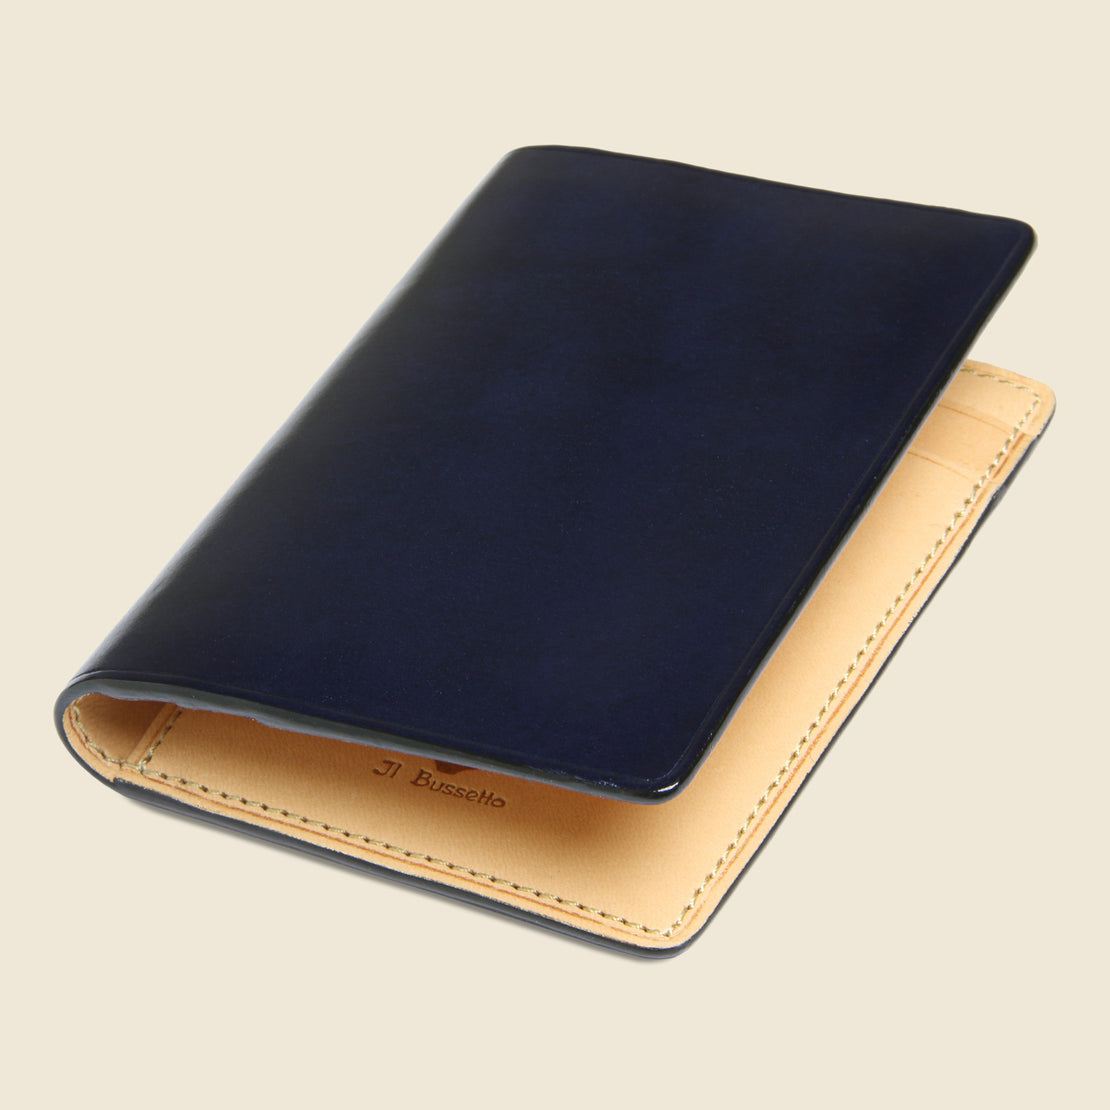 Bi-Fold Card Case - Navy - Il Bussetto - STAG Provisions - Accessories - Wallets